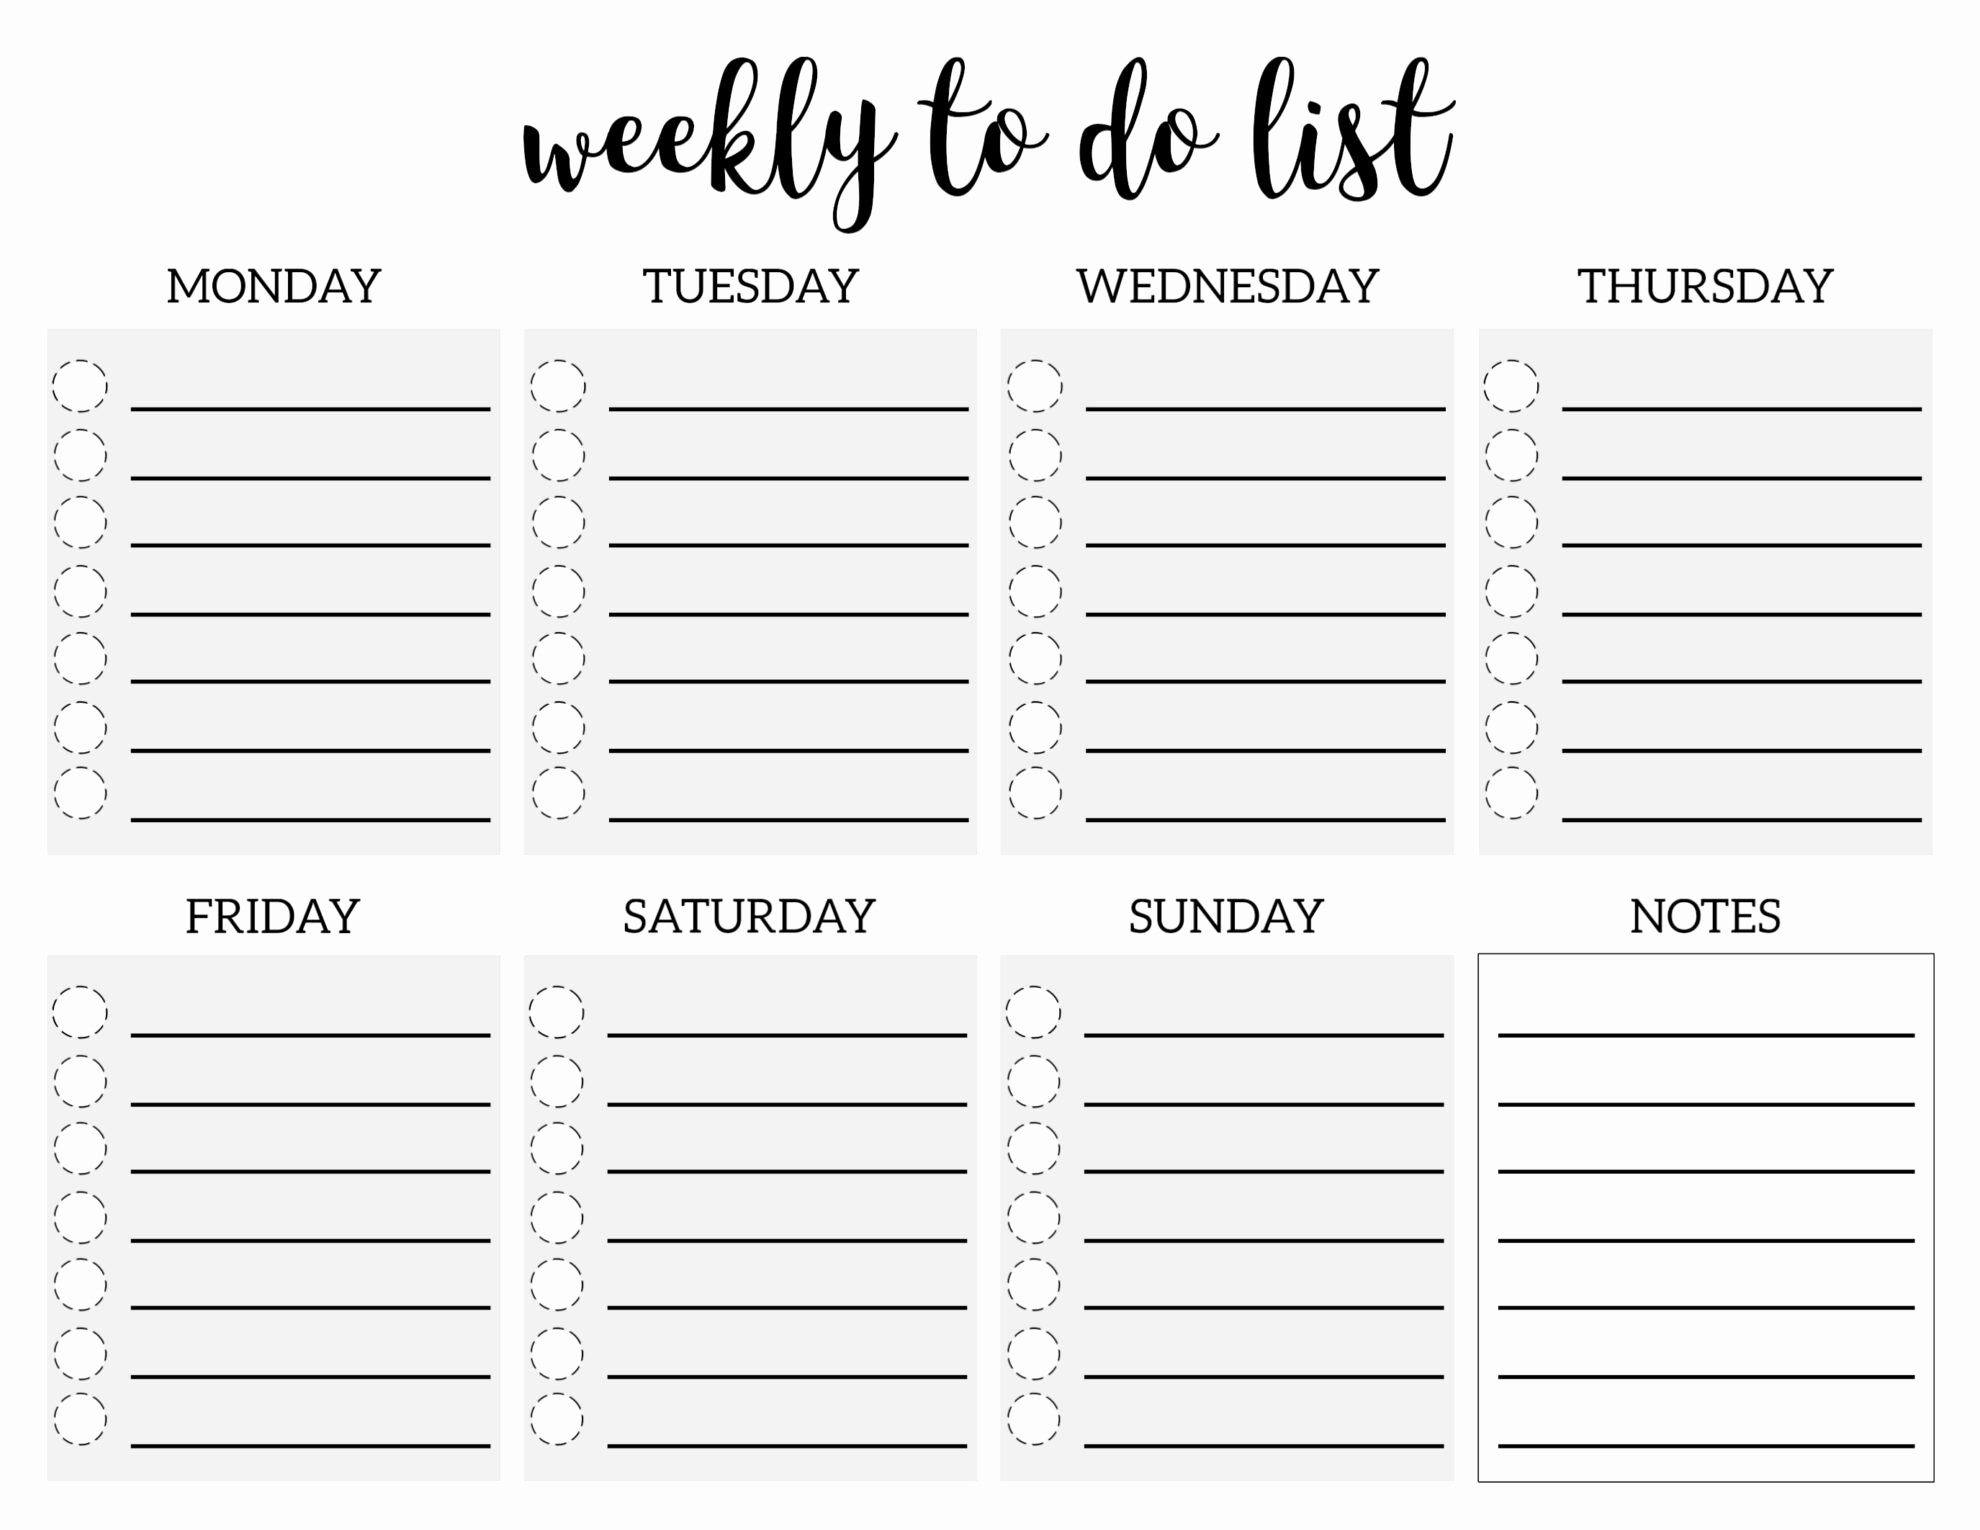 Weekly todo List Template Best Of Weekly to Do List Printable Checklist Template Paper